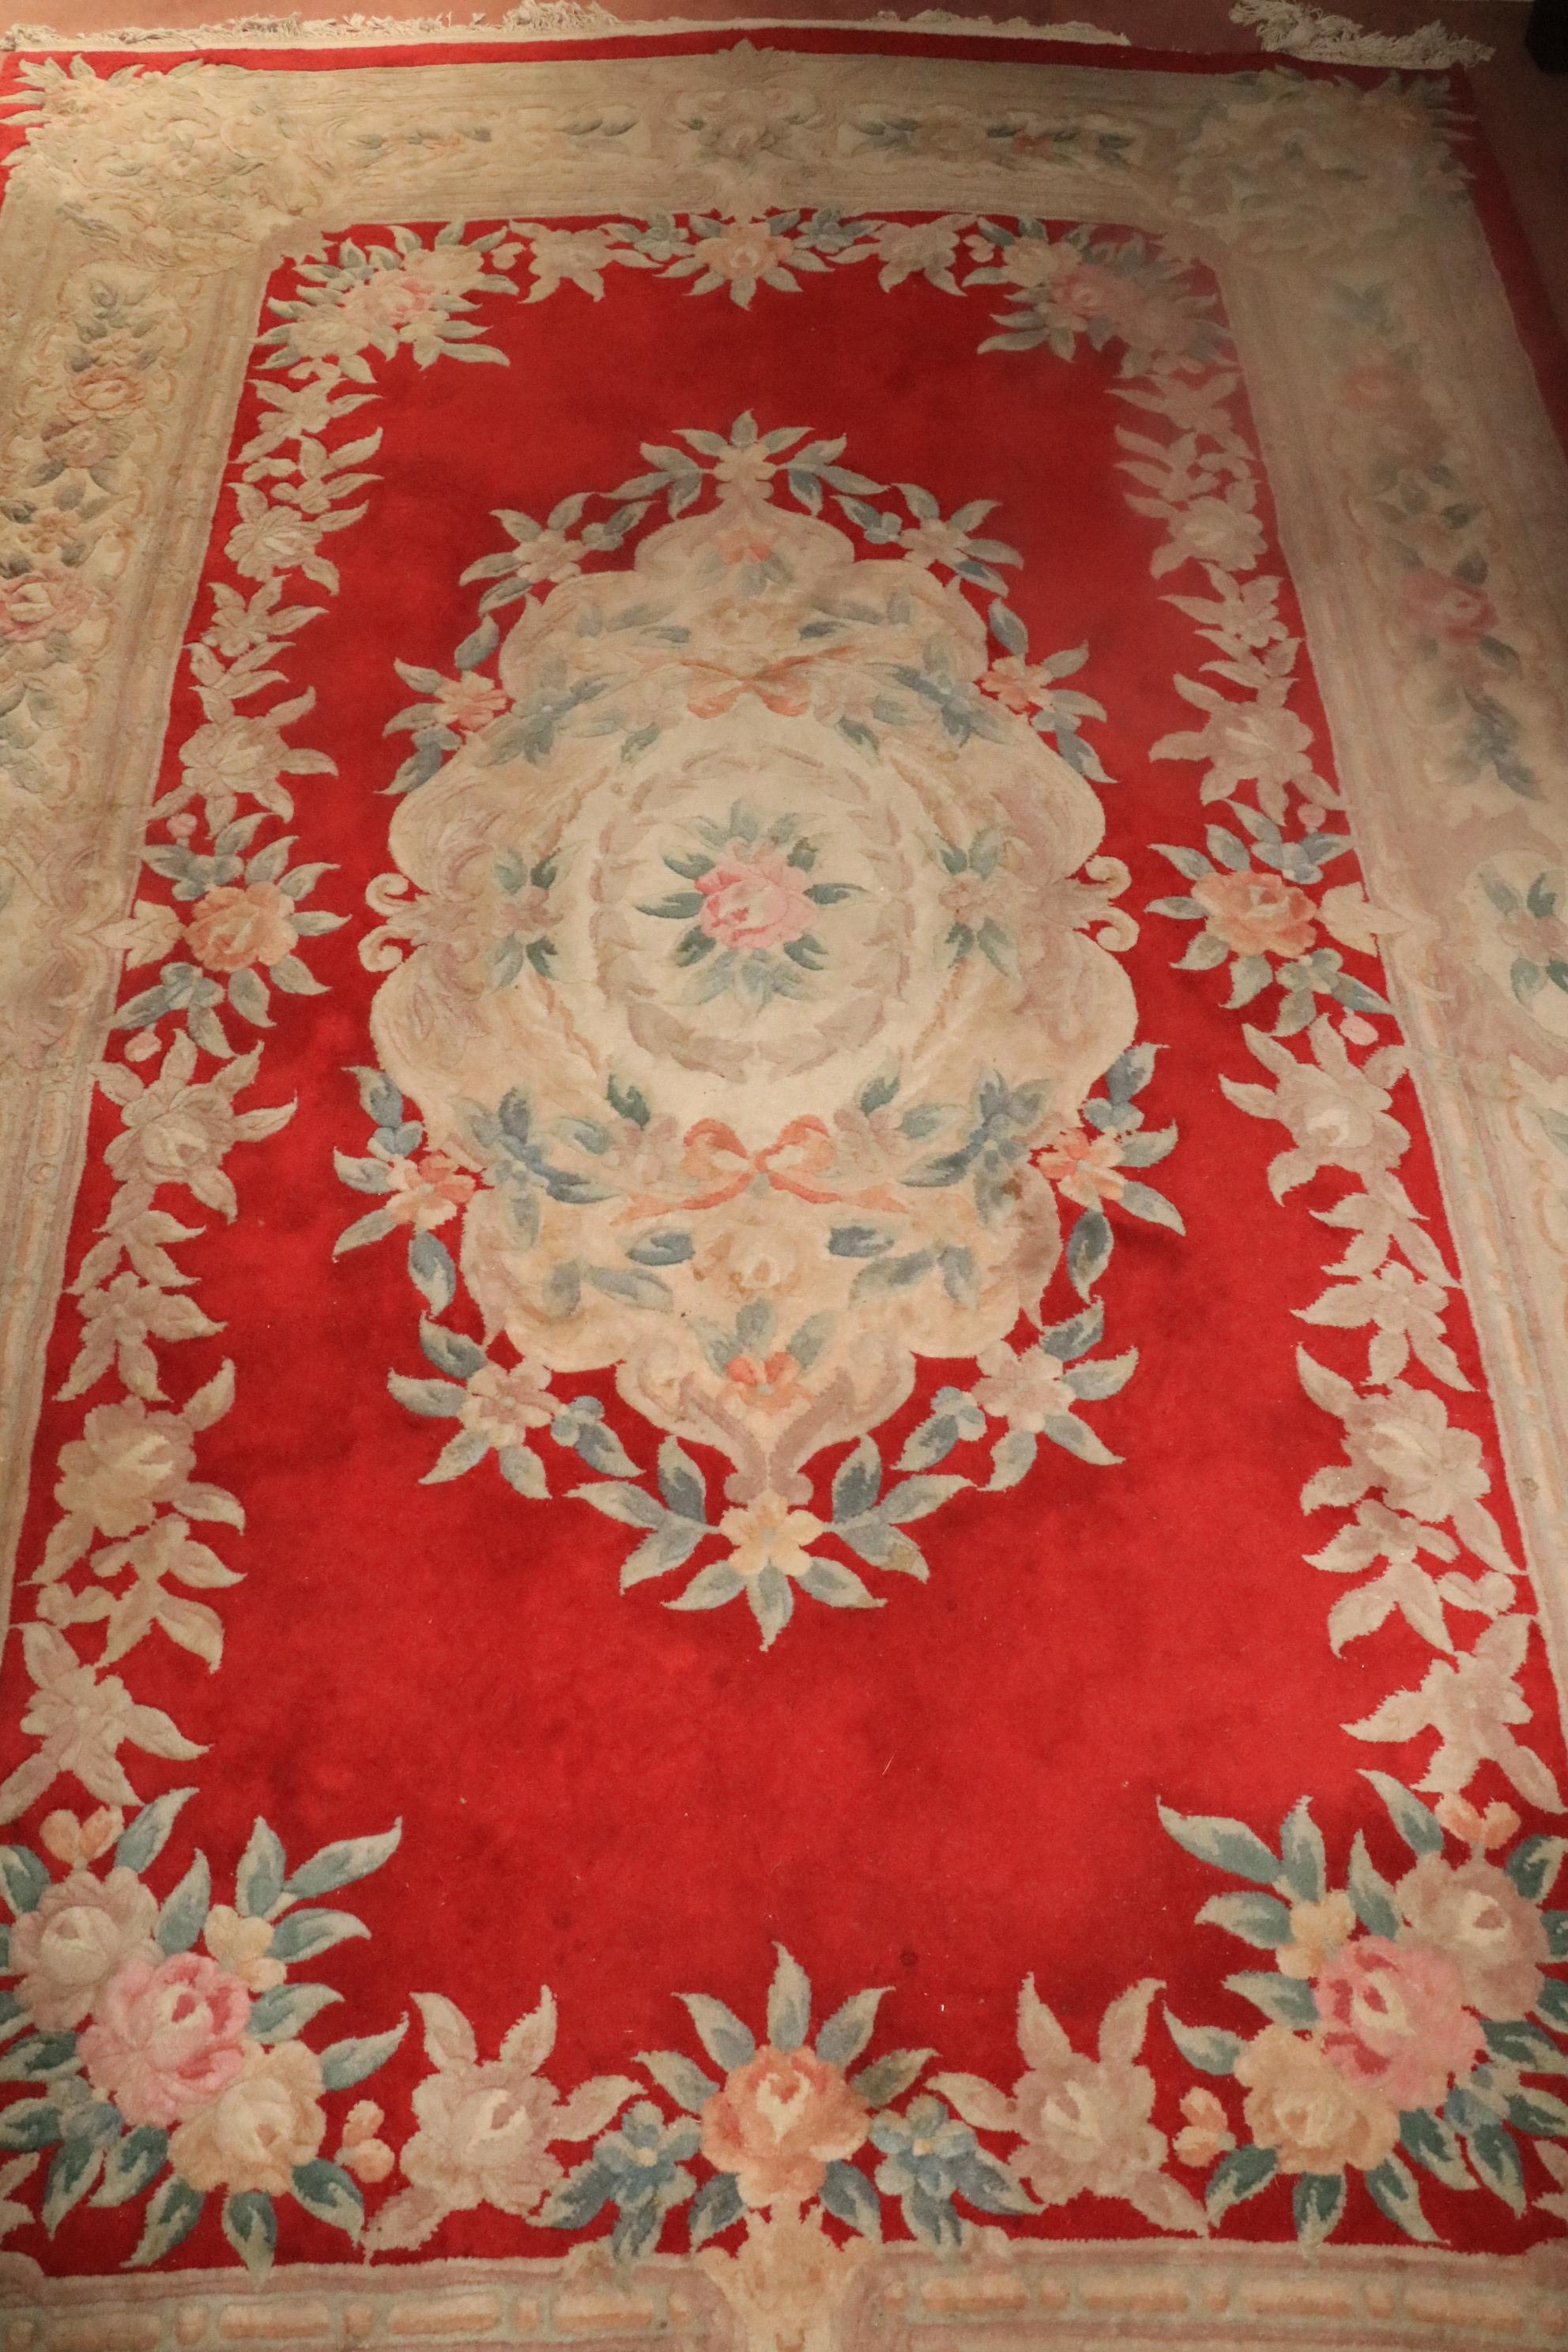 A heavy Chinese Rug, the centre red ground surrounded by a large floral border and similar decorated - Image 2 of 3